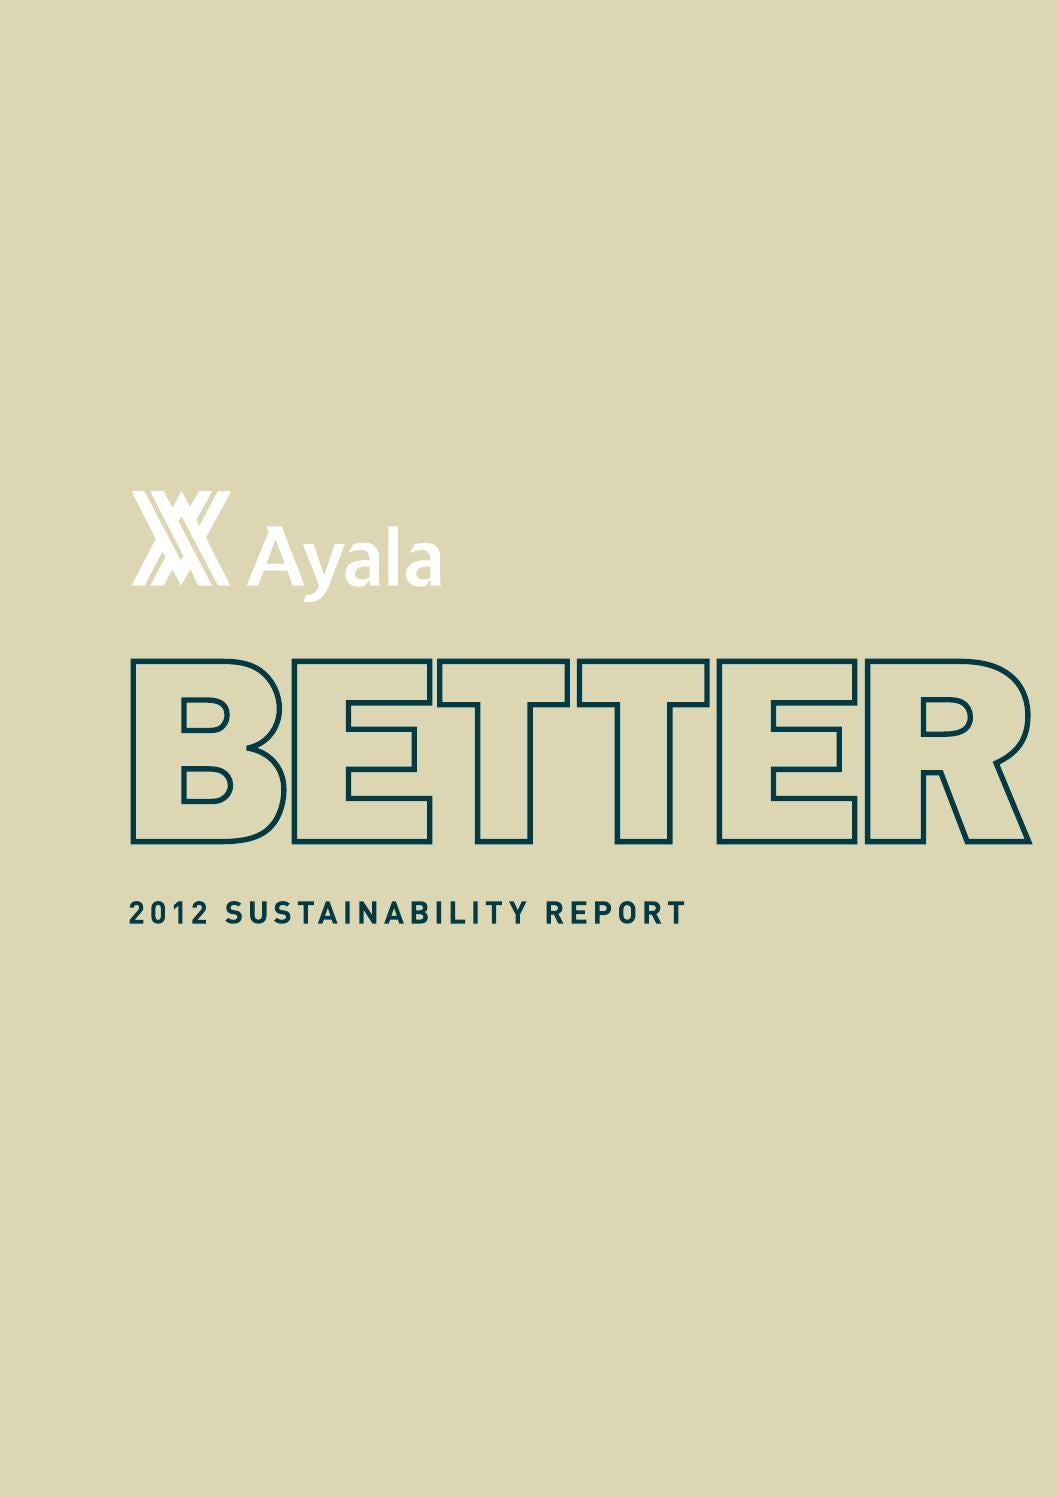 Ayala Corporation - 2013 Sustainability Report by Drink - issuu